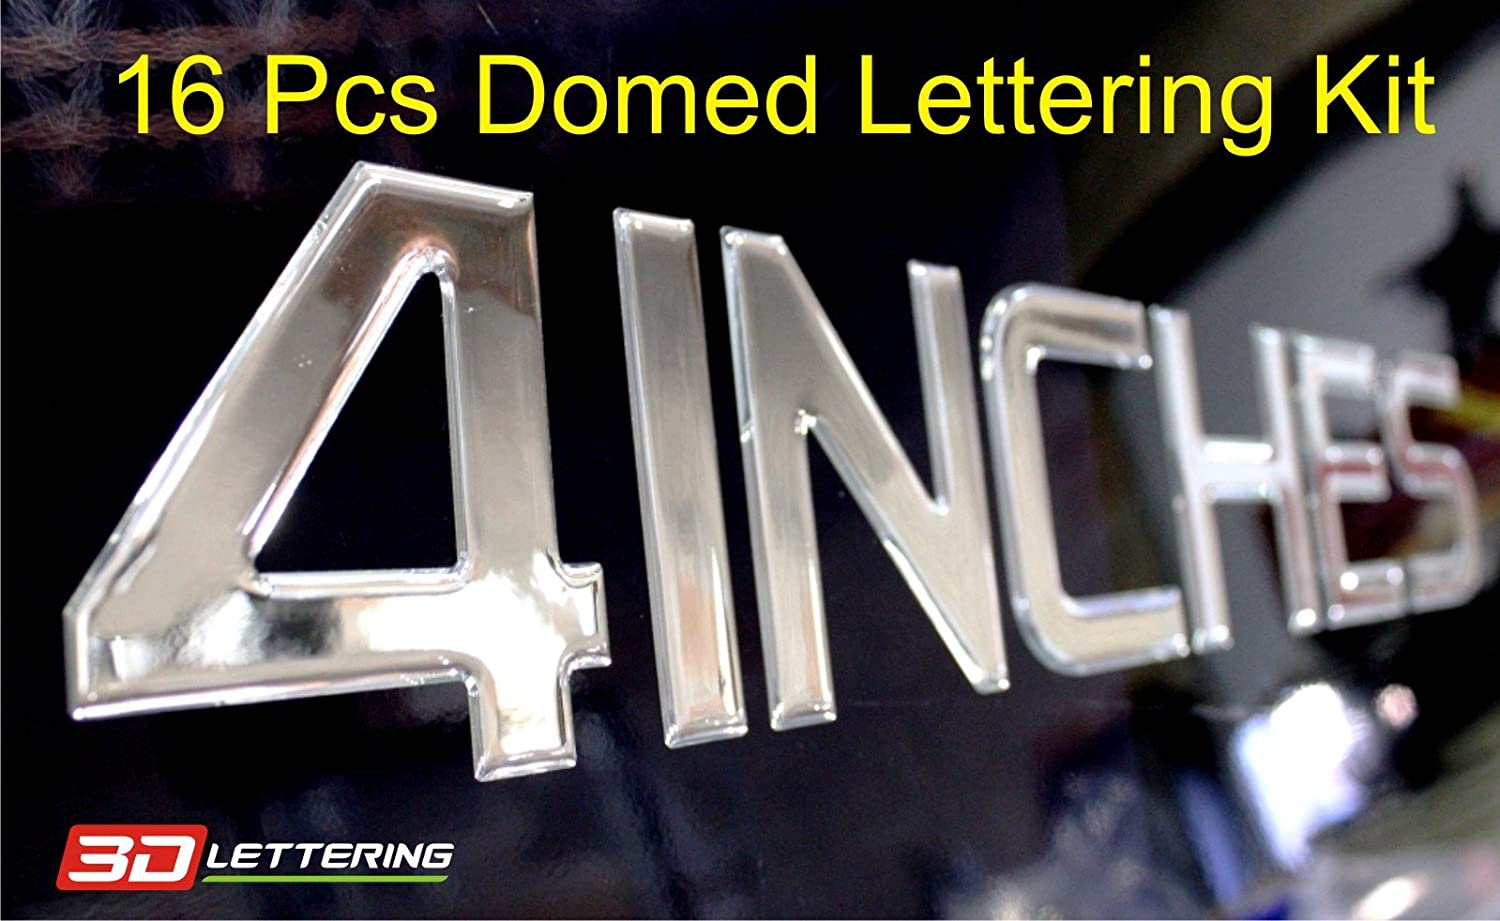 Registration Numbers or Custom Lettering Domed Lettering /& Numbers 4 Inches 4 = 101.6 mm, 16 Pcs Kit Chrome Domed